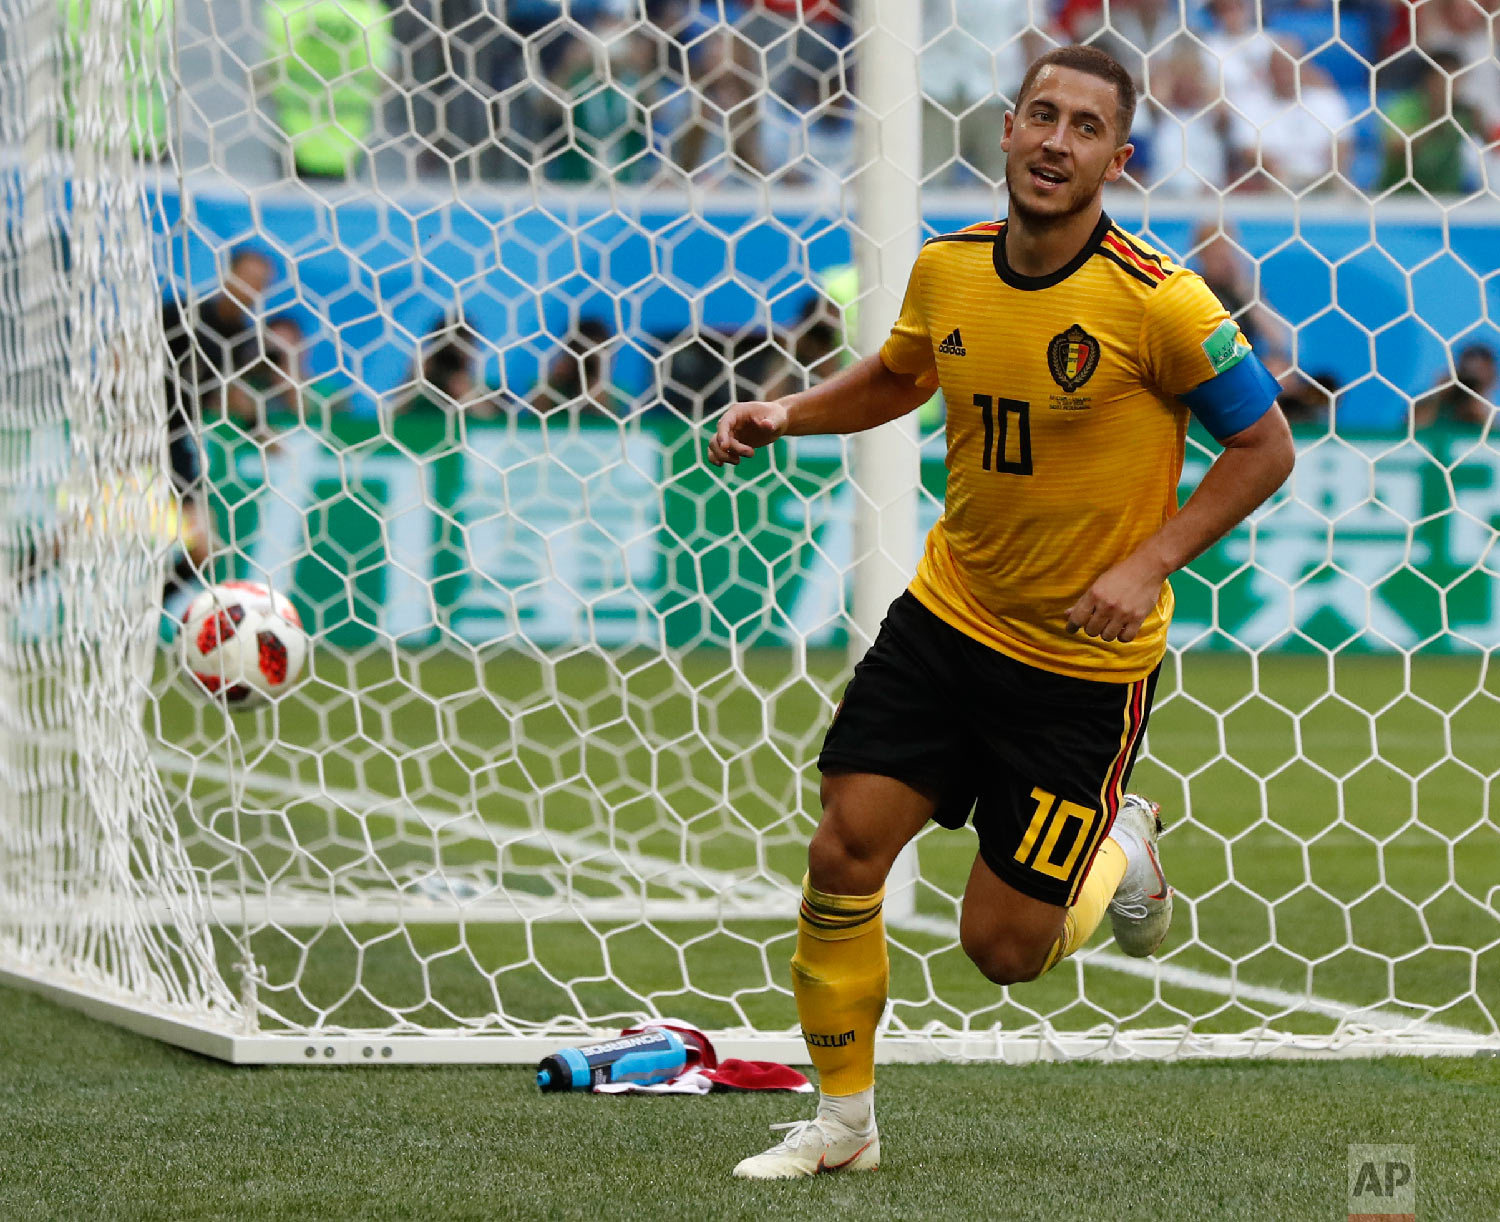 Belgium's Eden Hazard runs in celebration after scoring his side's second goal during the third place match between England and Belgium at the 2018 soccer World Cup in the St. Petersburg Stadium in St. Petersburg, Russia, Saturday, July 14, 2018. (AP Photo/Petr David Josek)